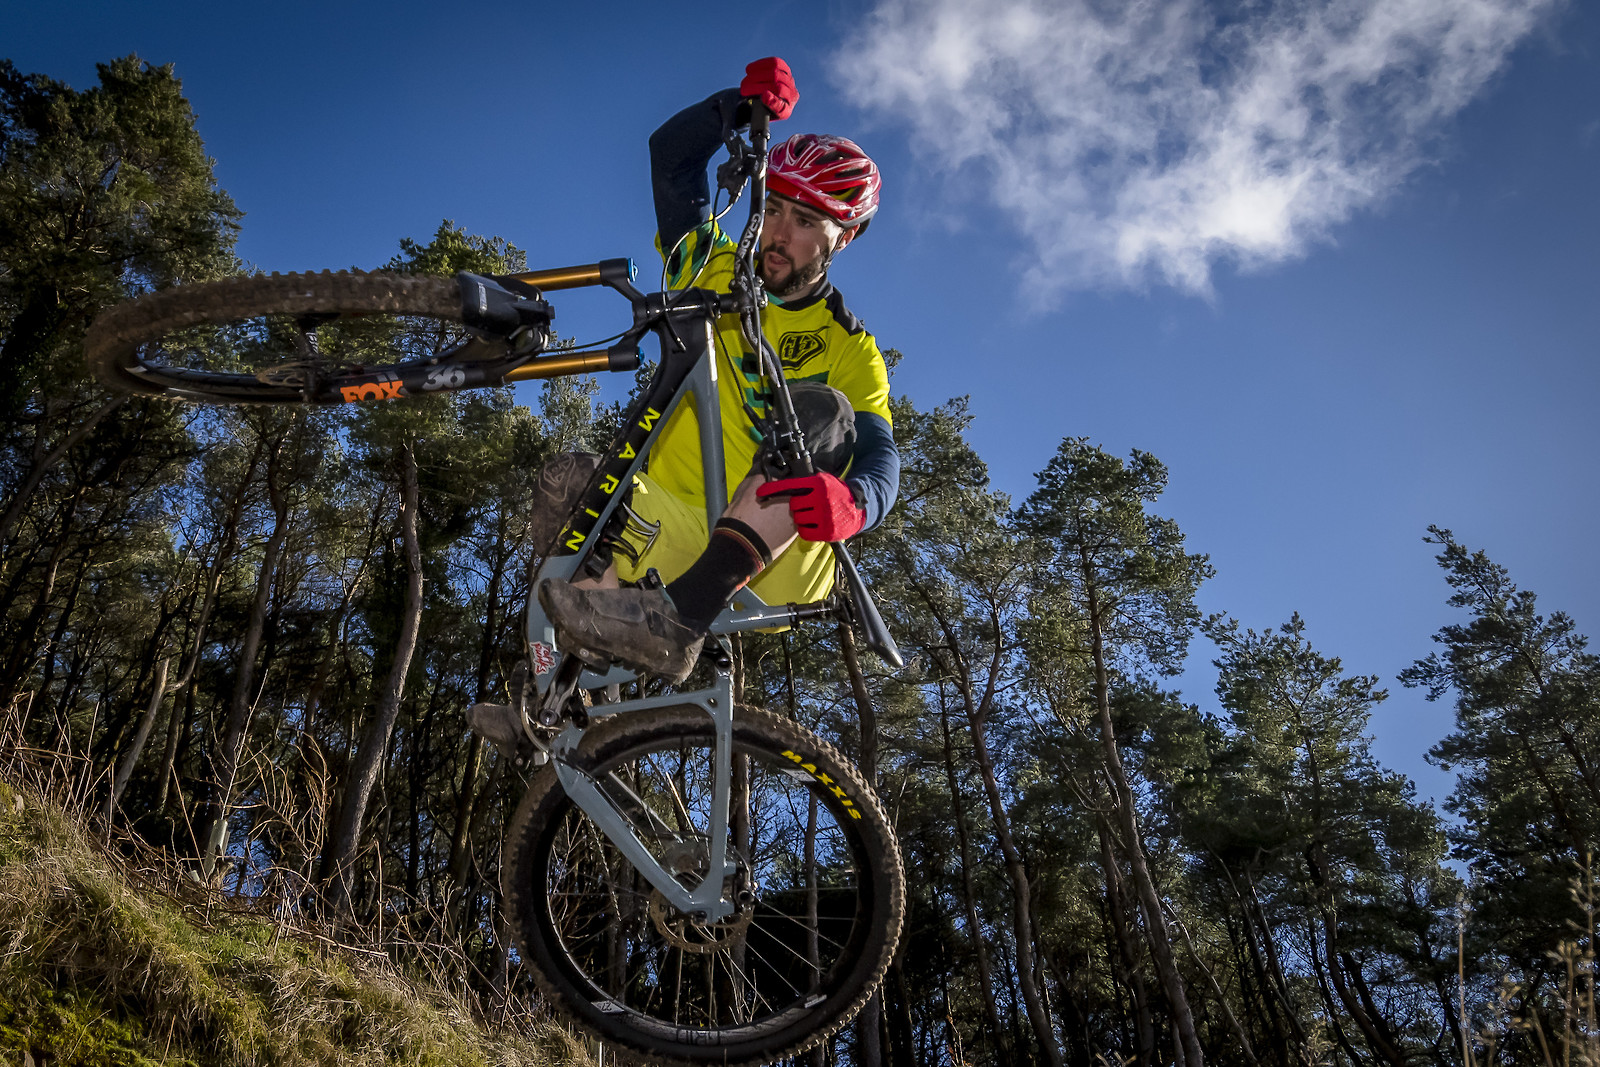 DSC0245 - robbarkerimages2017 - Mountain Biking Pictures - Vital MTB